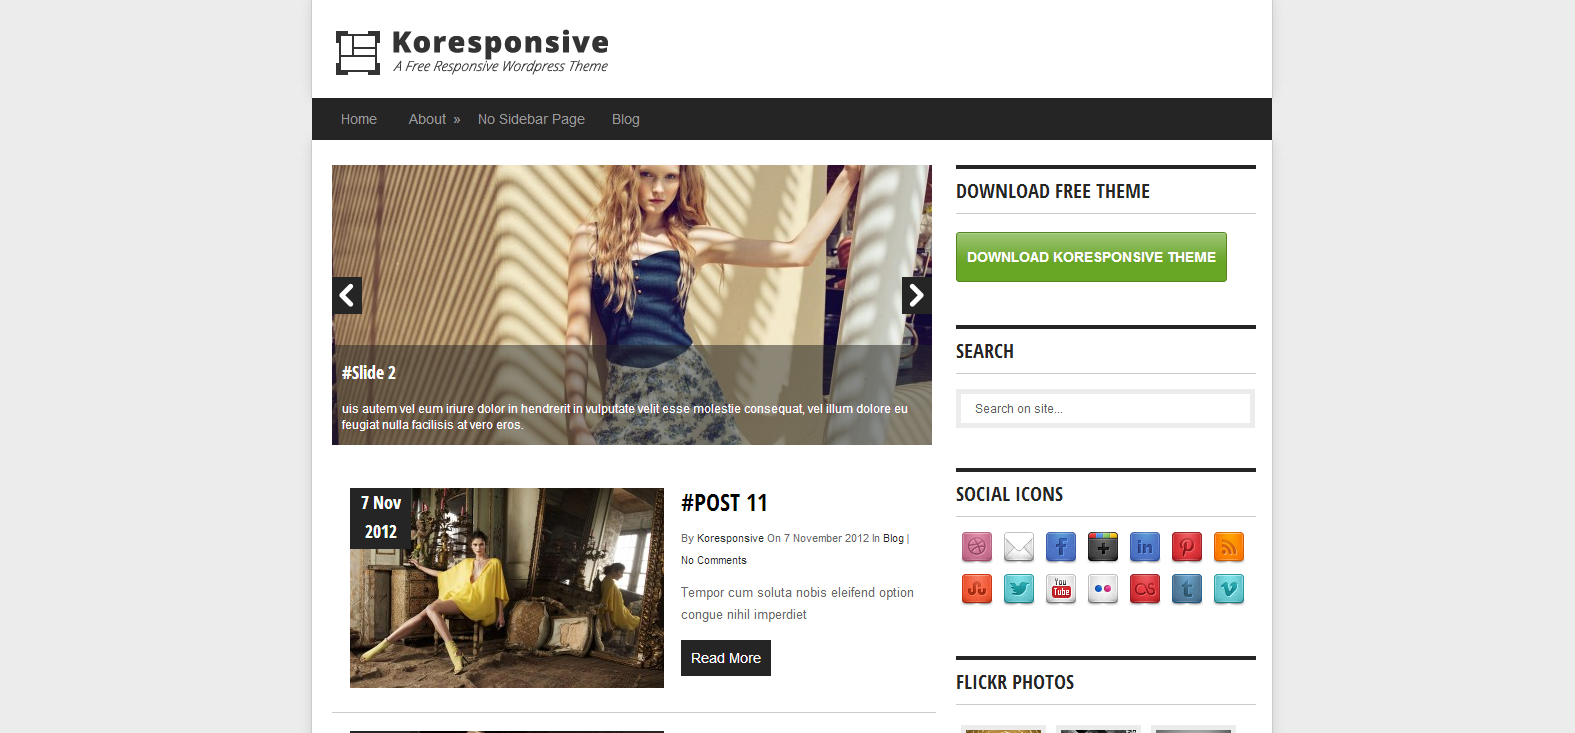 Koresponsive – A free Responsive WordPress Theme